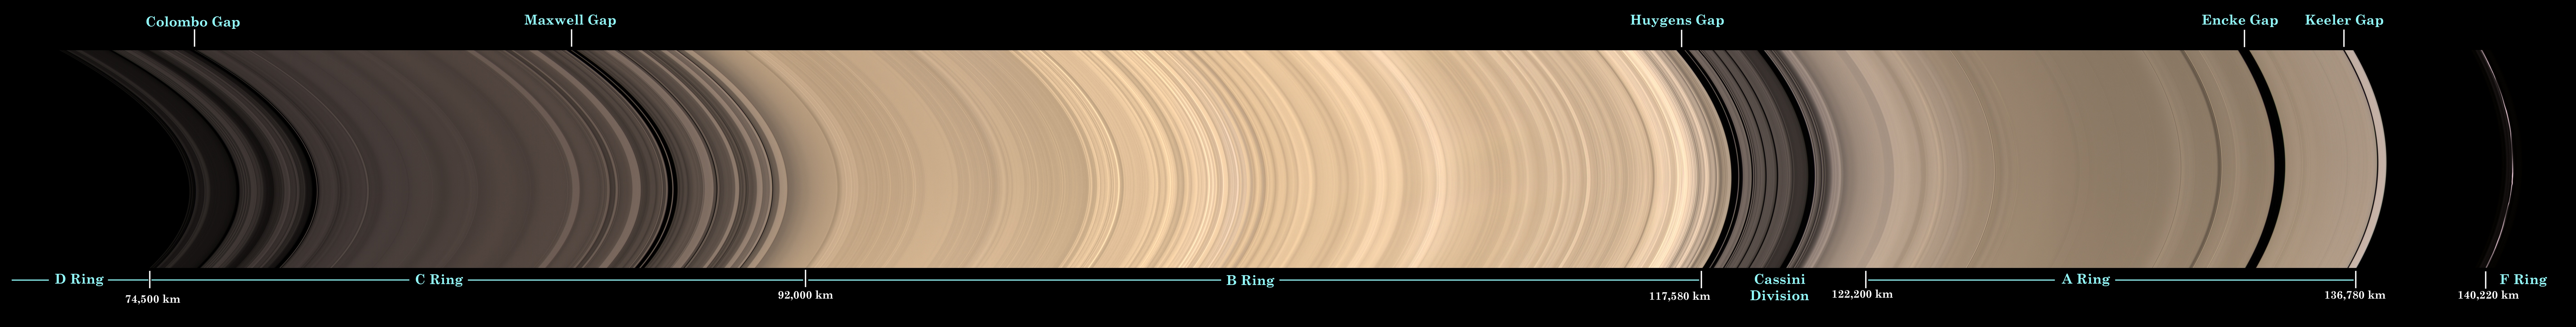 Stunning New Images of Saturn's Rings